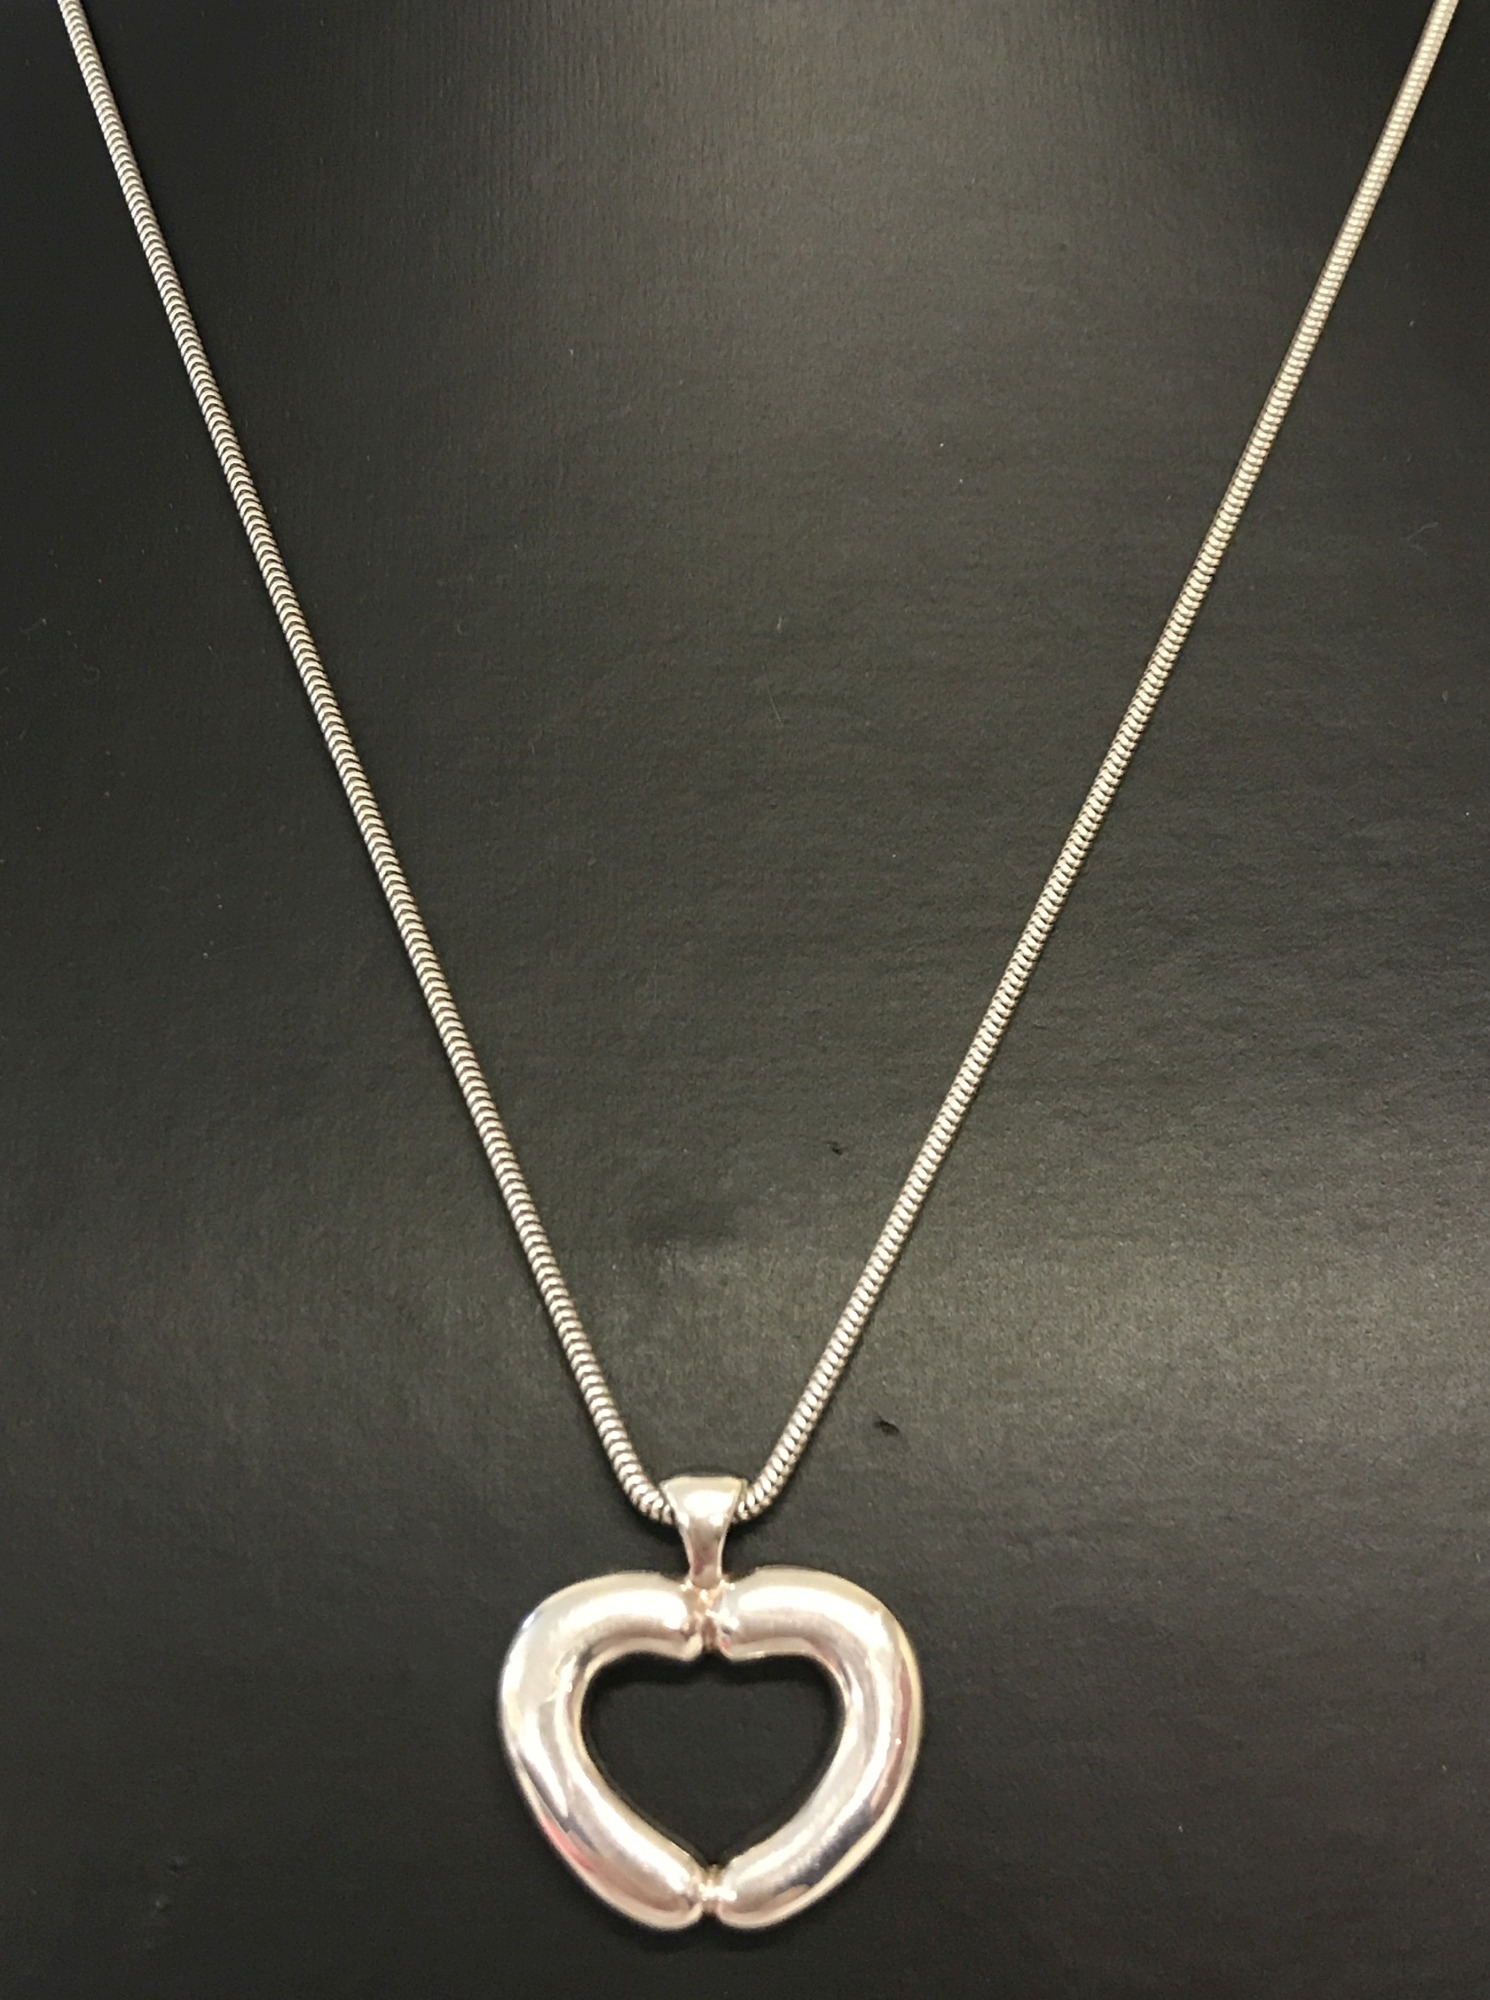 Lot 25 - A boxed 'Tomfoolery' silvery contemporary style heart necklace by Theo Fennell.